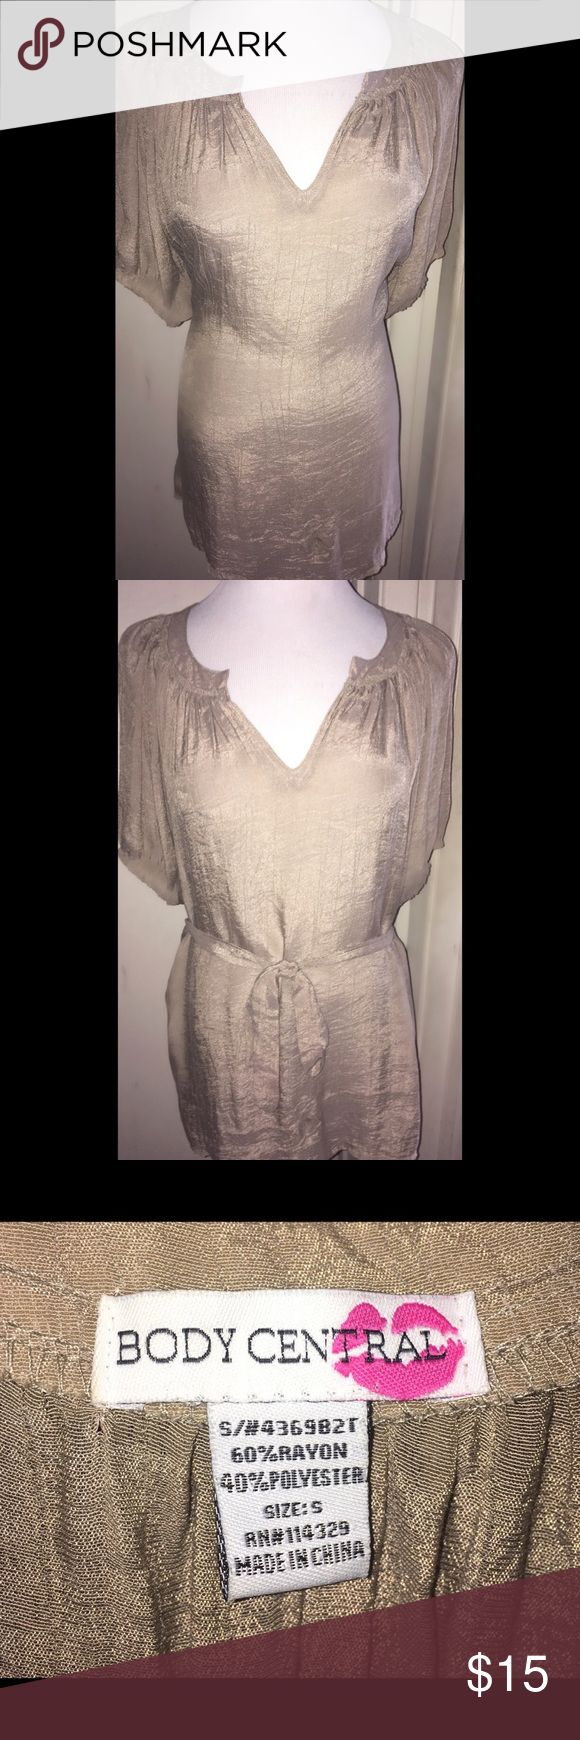 Body Central Blouson Tunic - Size S Body Central Blouson Tunic in a Size S.  Removable belt can be tied in front or the back of the blouse.  Also available in navy.  Like new/excellent condition! Body Central Tops Tunics